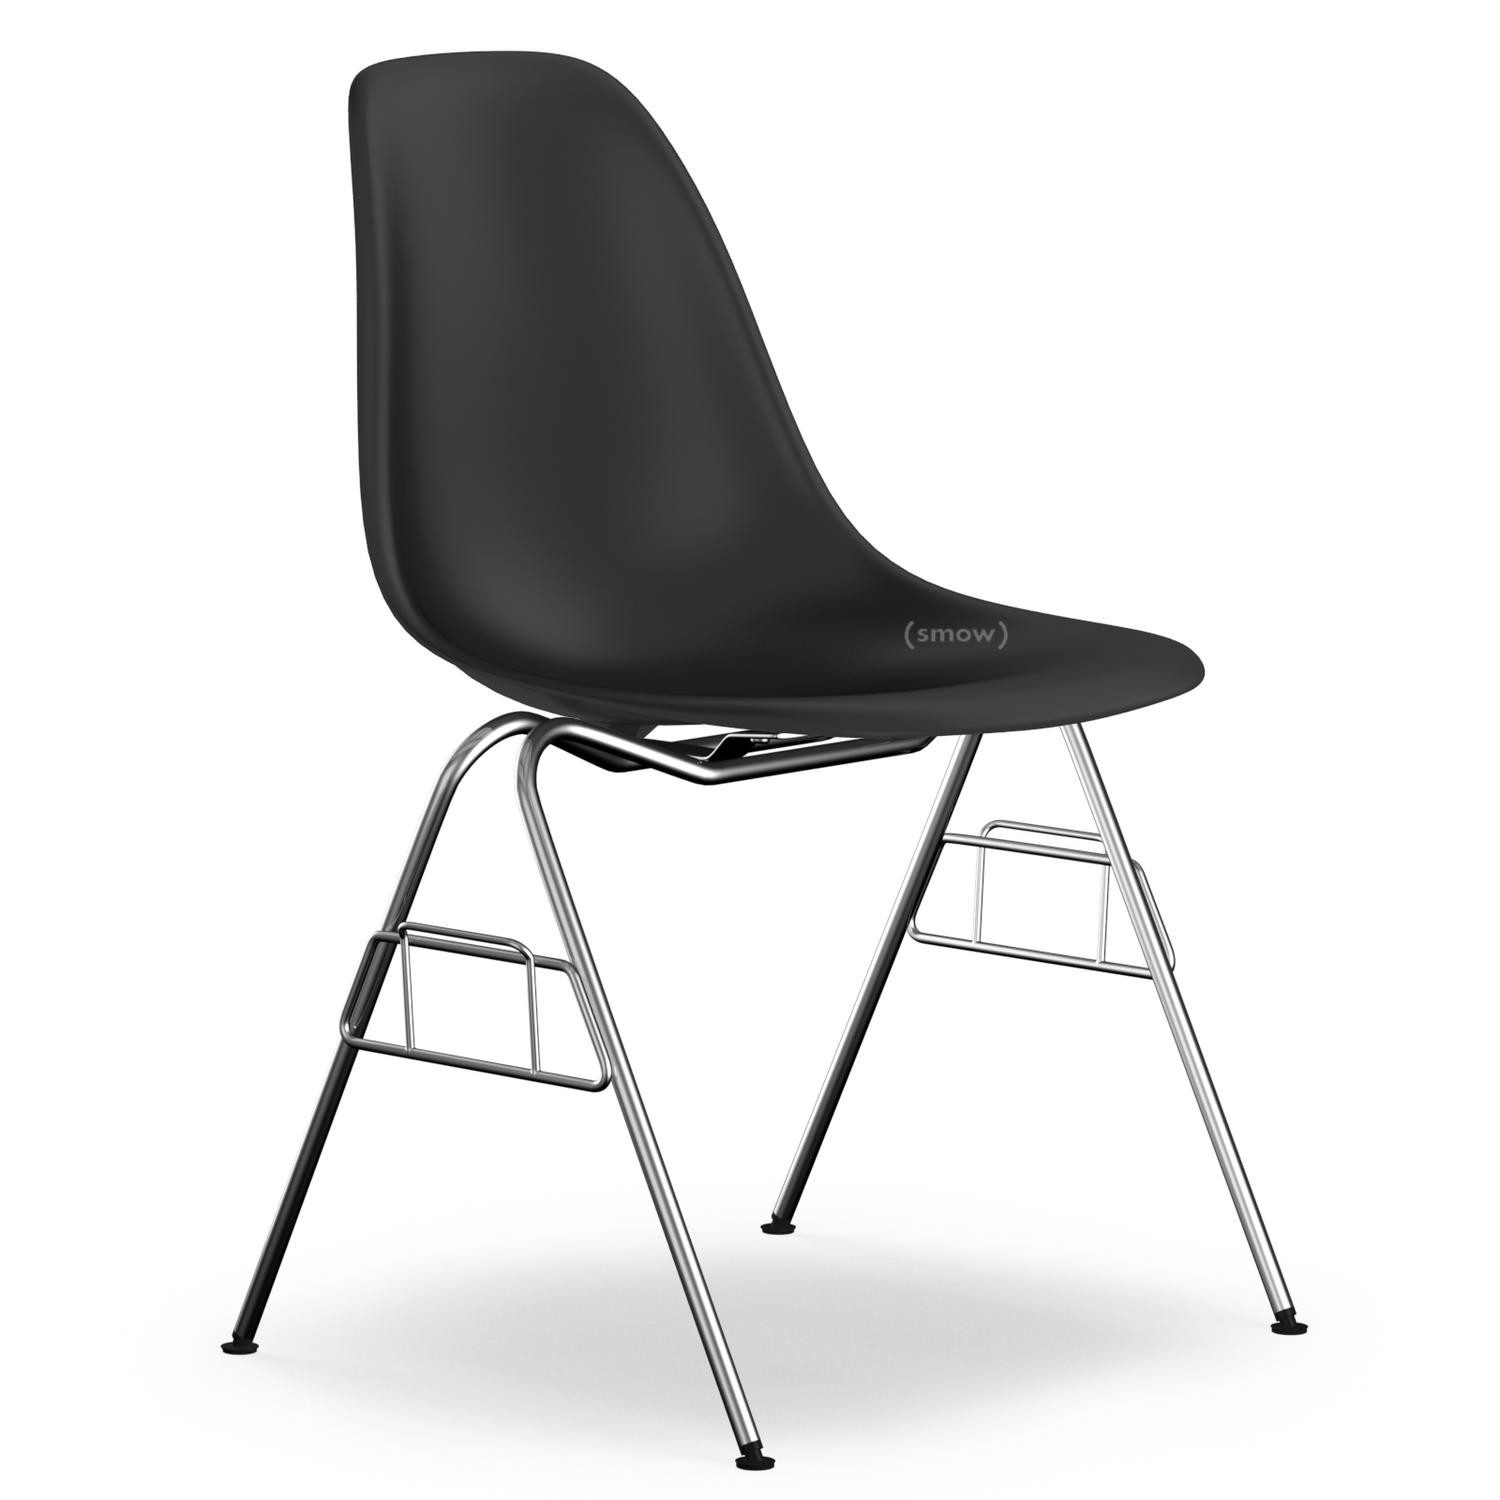 vitra eames plastic side chair dss by charles ray eames. Black Bedroom Furniture Sets. Home Design Ideas